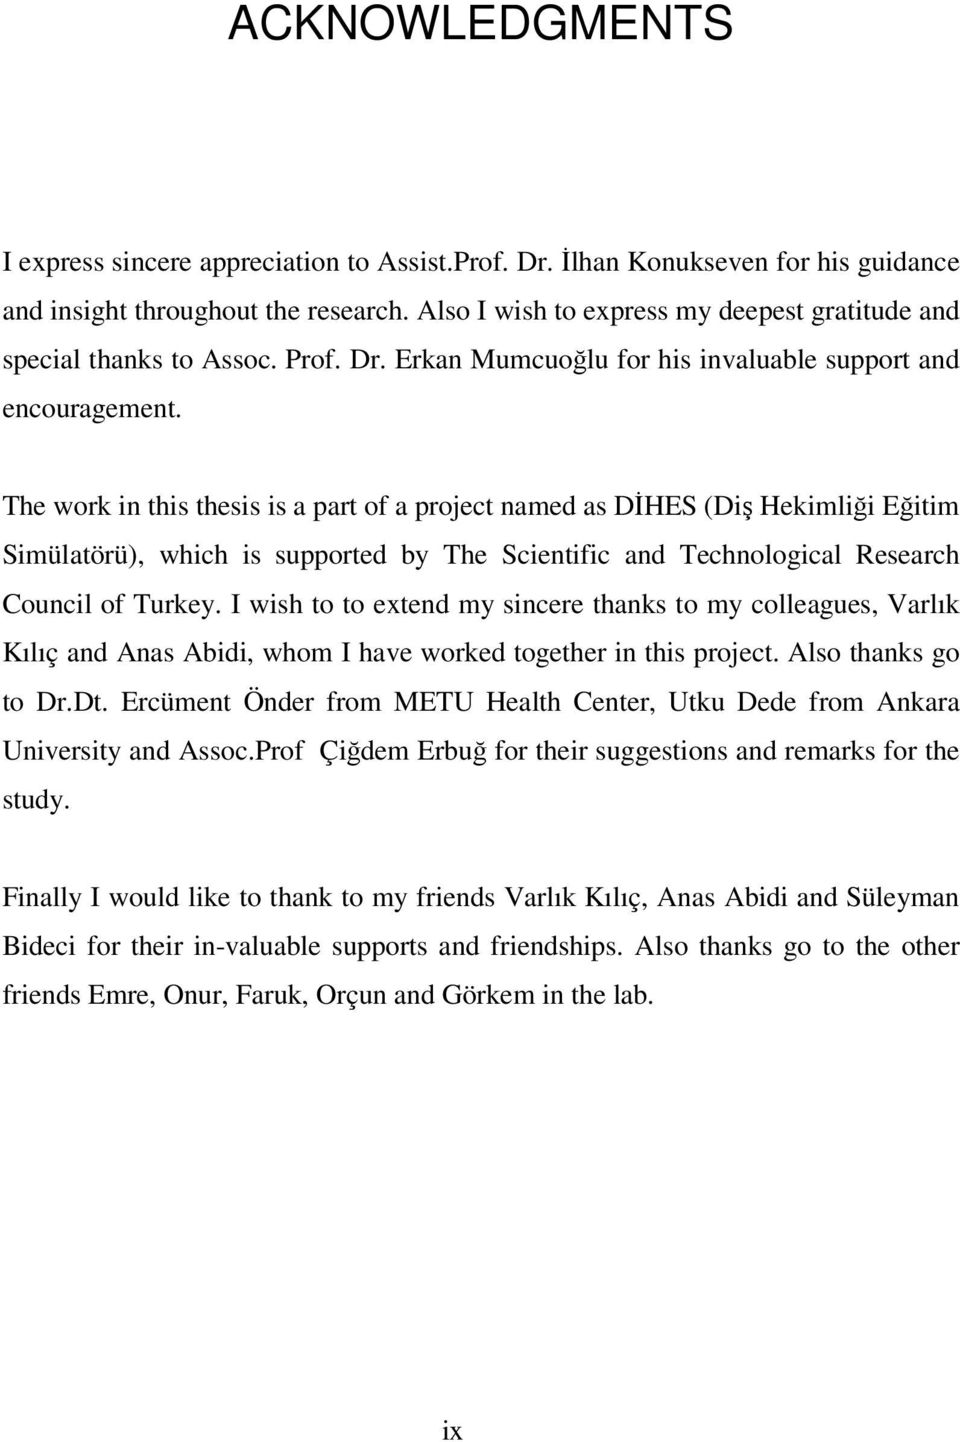 The work in this thesis is a part of a project named as DĐHES (Diş Hekimliği Eğitim Simülatörü), which is supported by The Scientific and Technological Research Council of Turkey.